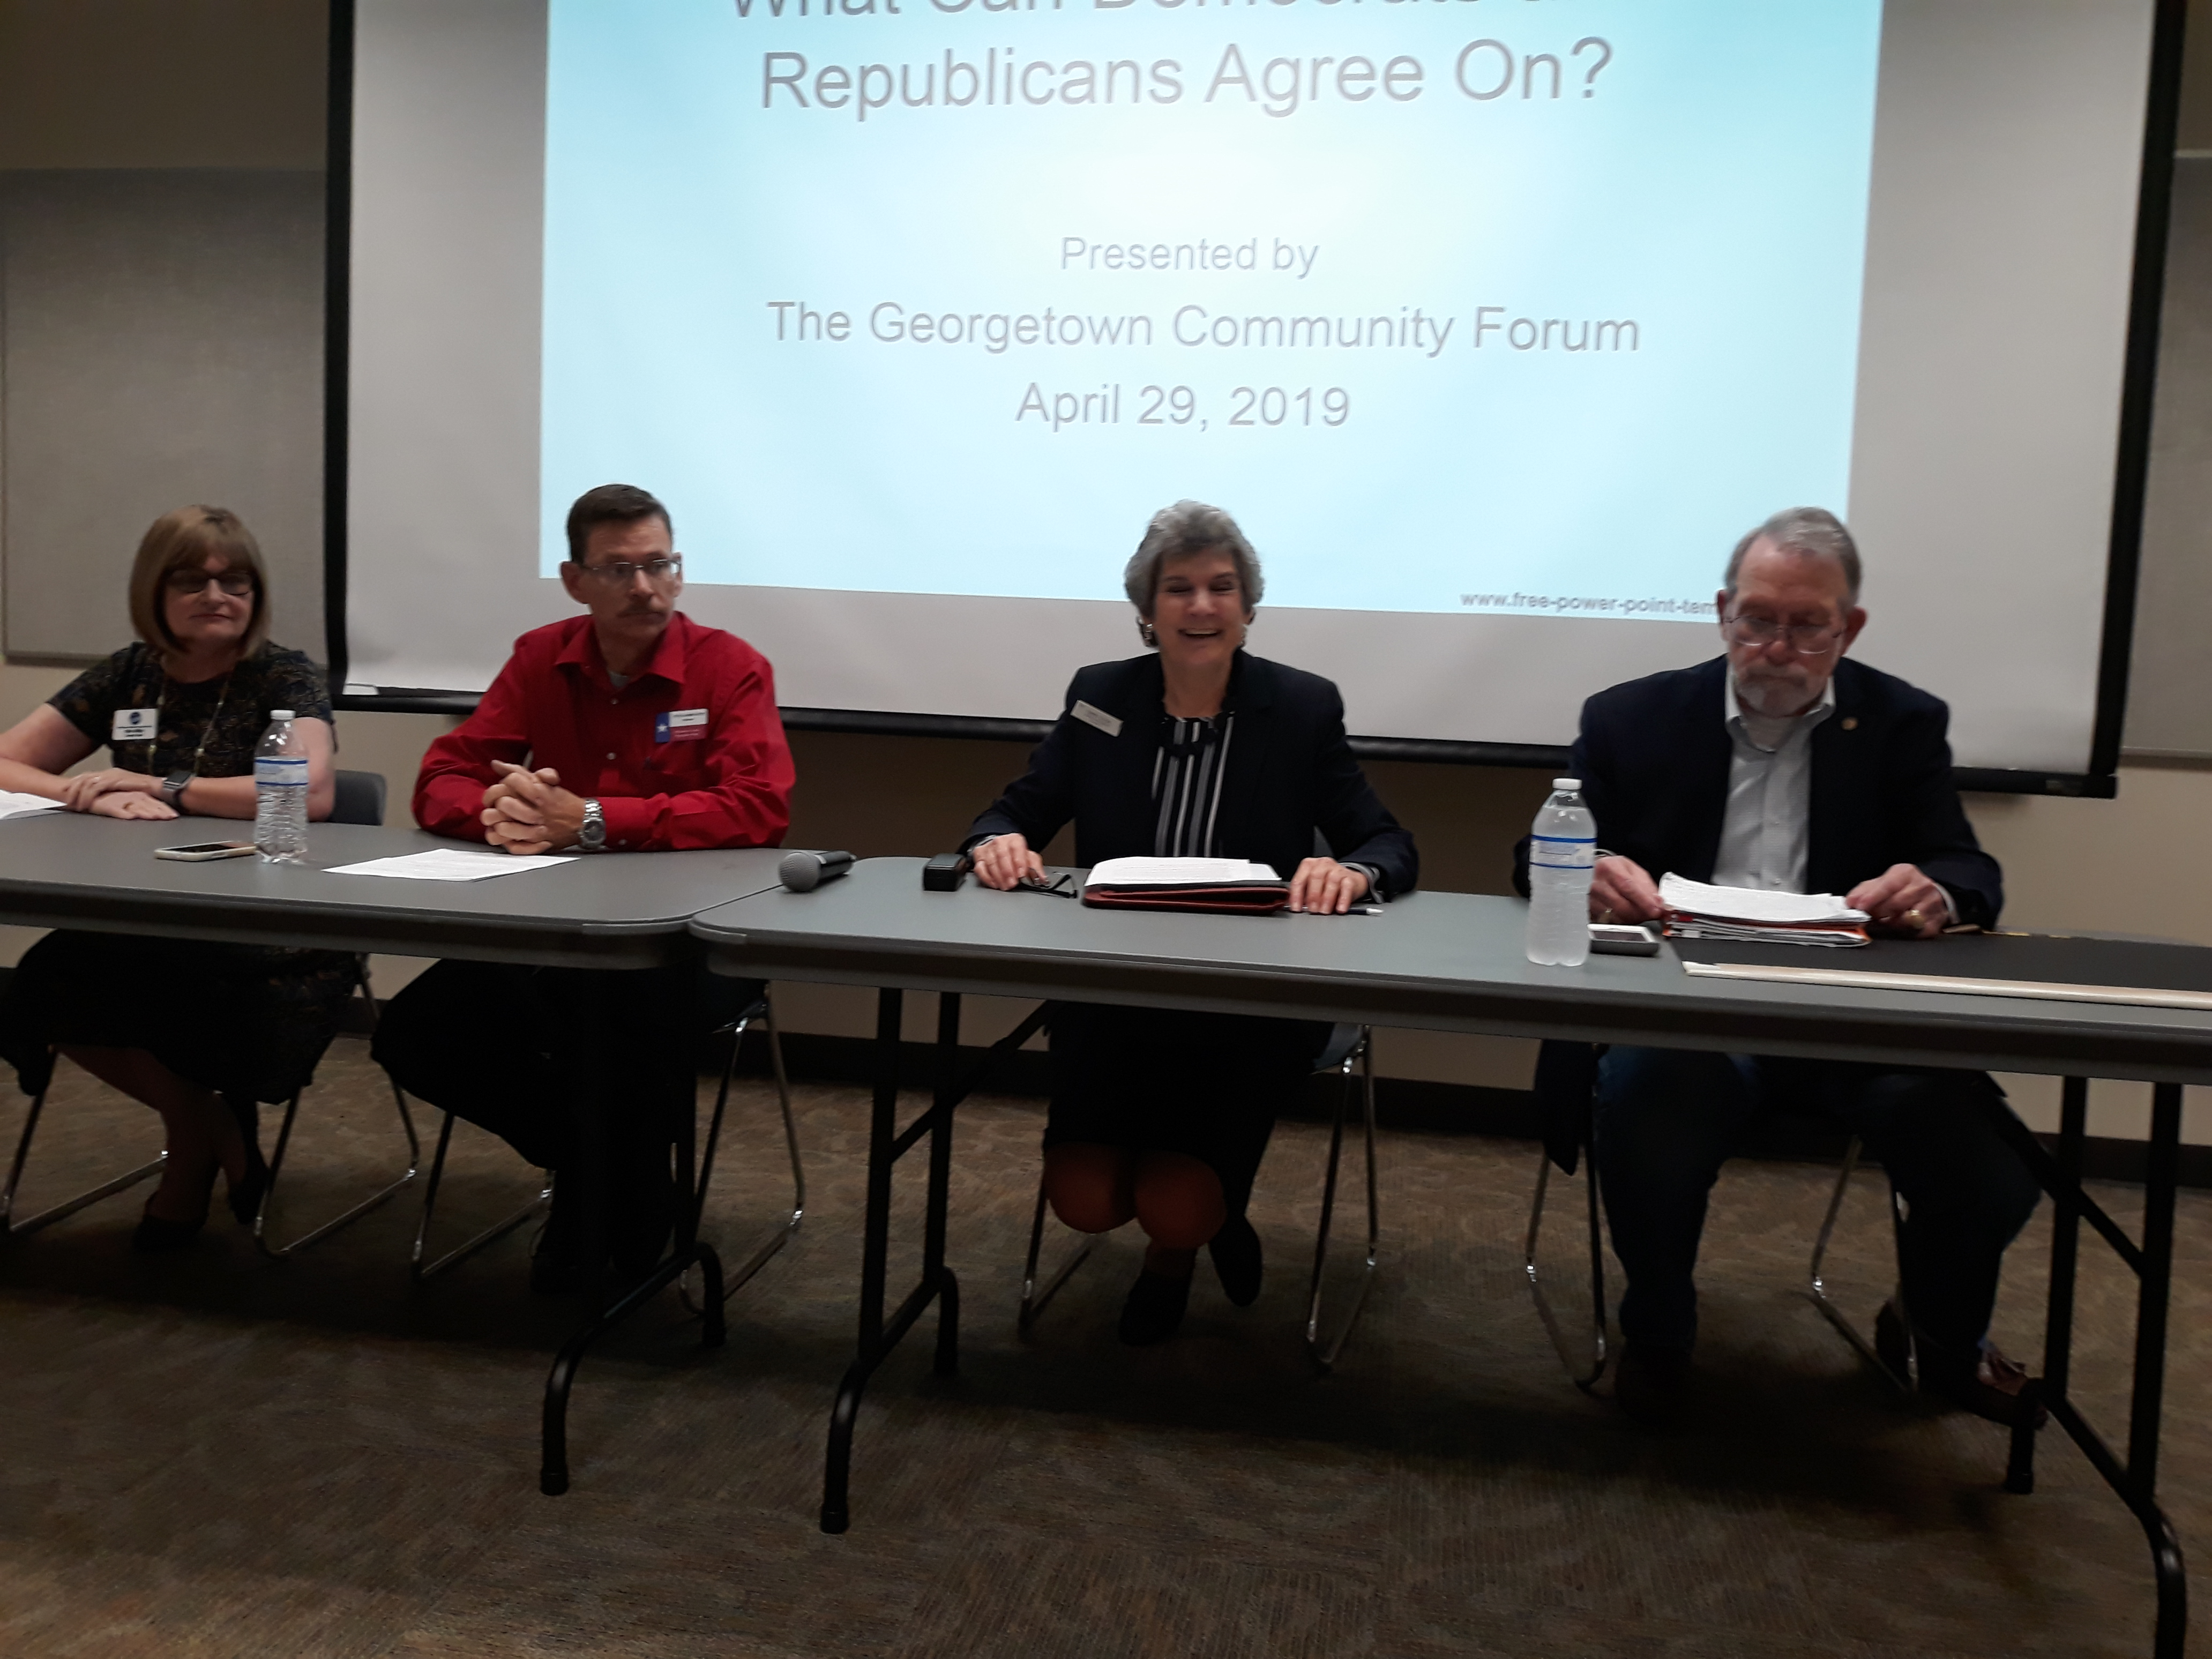 Panelists from left to right include Kim Gilby, Chair of the Williamson County Democratic Party; Steve Armbruster, Chair of the Republican Party; Commissioner Cook; and Frederick Bothwell, III a Republican from Georgetown.